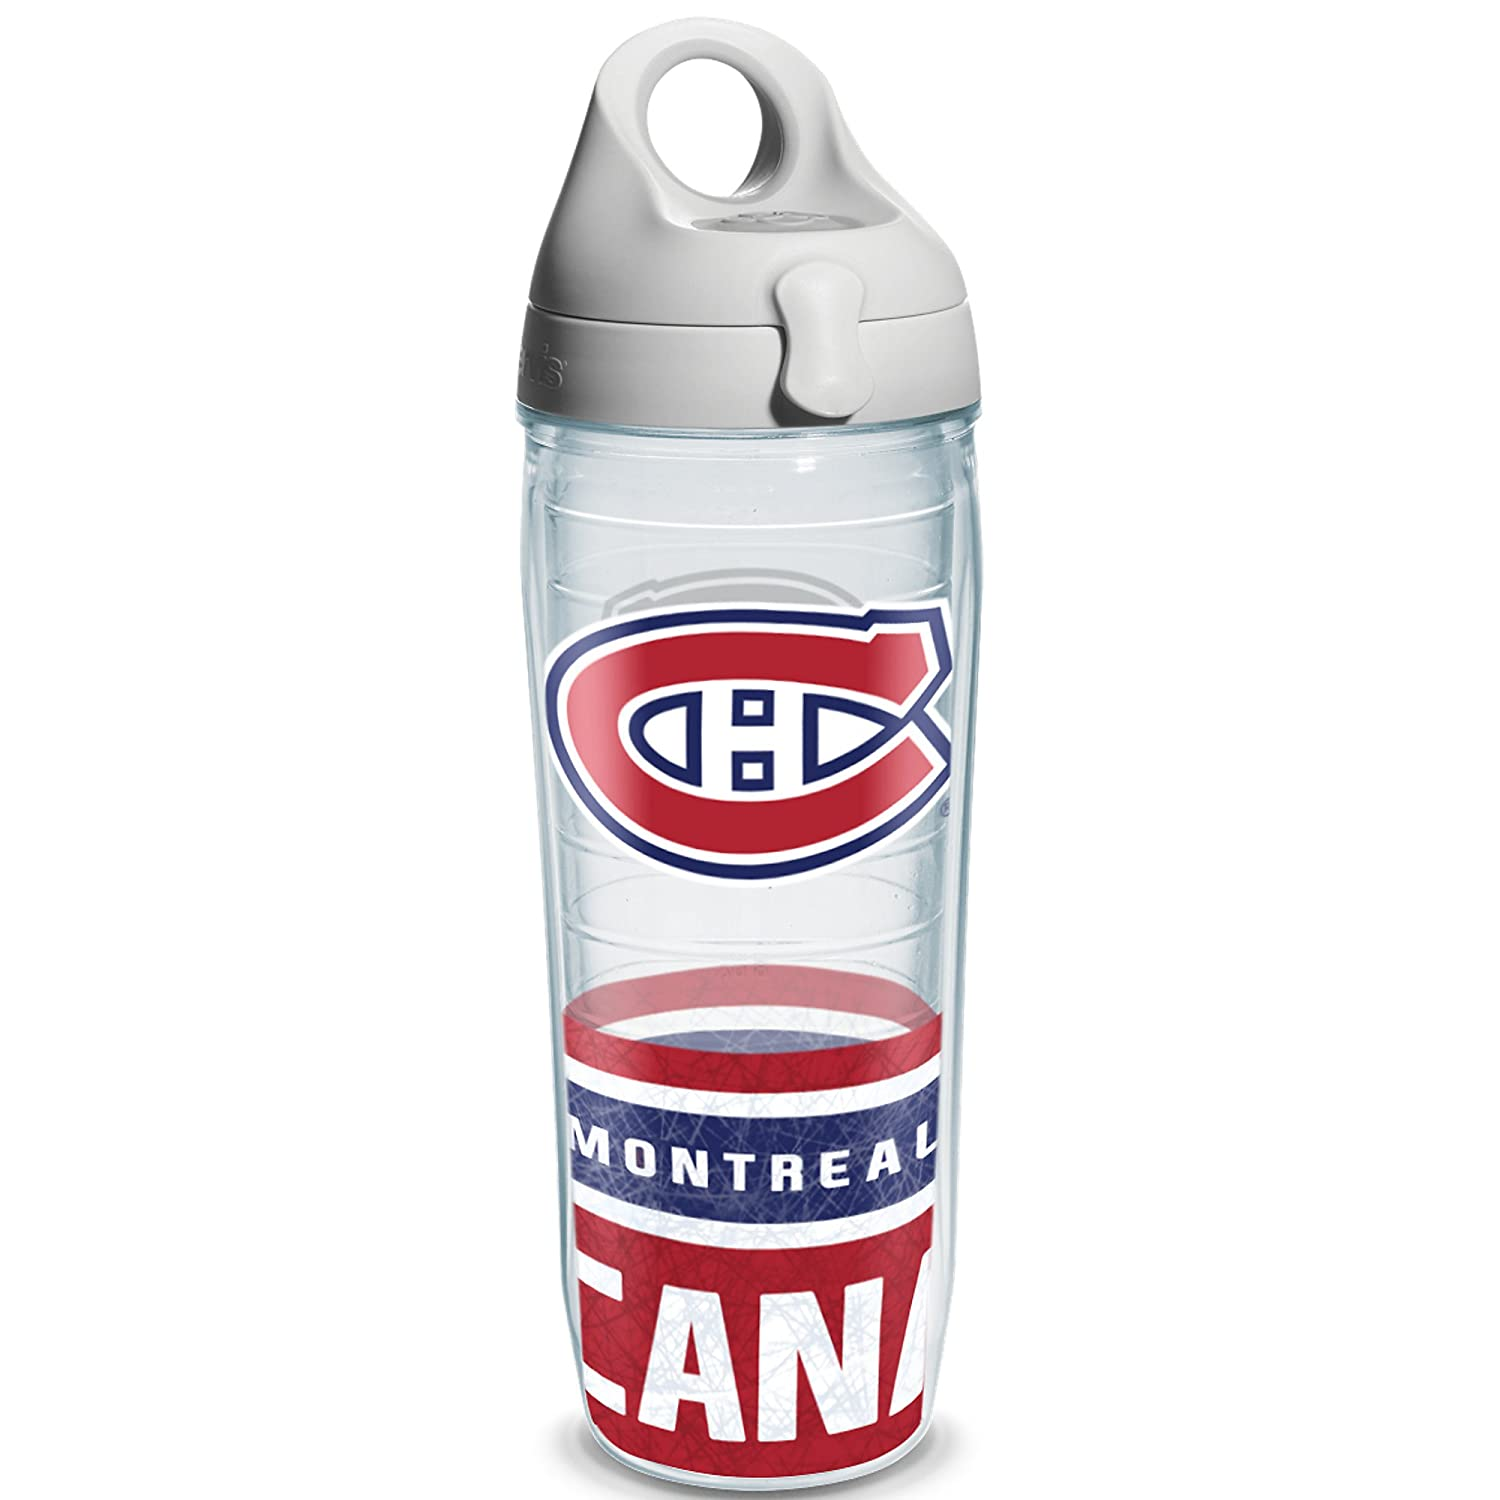 Tervis 1145516 NHL Montreal Canadiens Water Bottle with Grau Lid, Wrap, 24 oz, Clear by Tervis